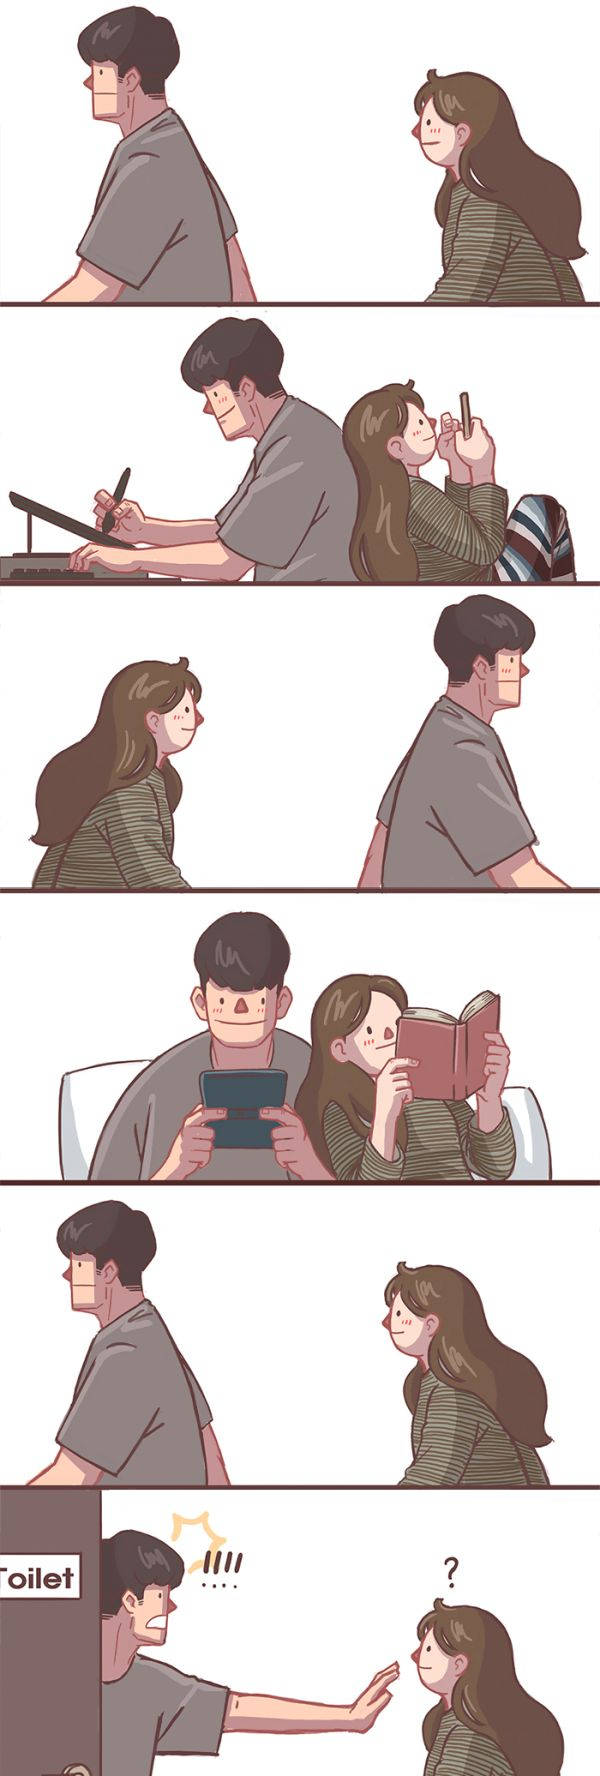 Comics About Relationship